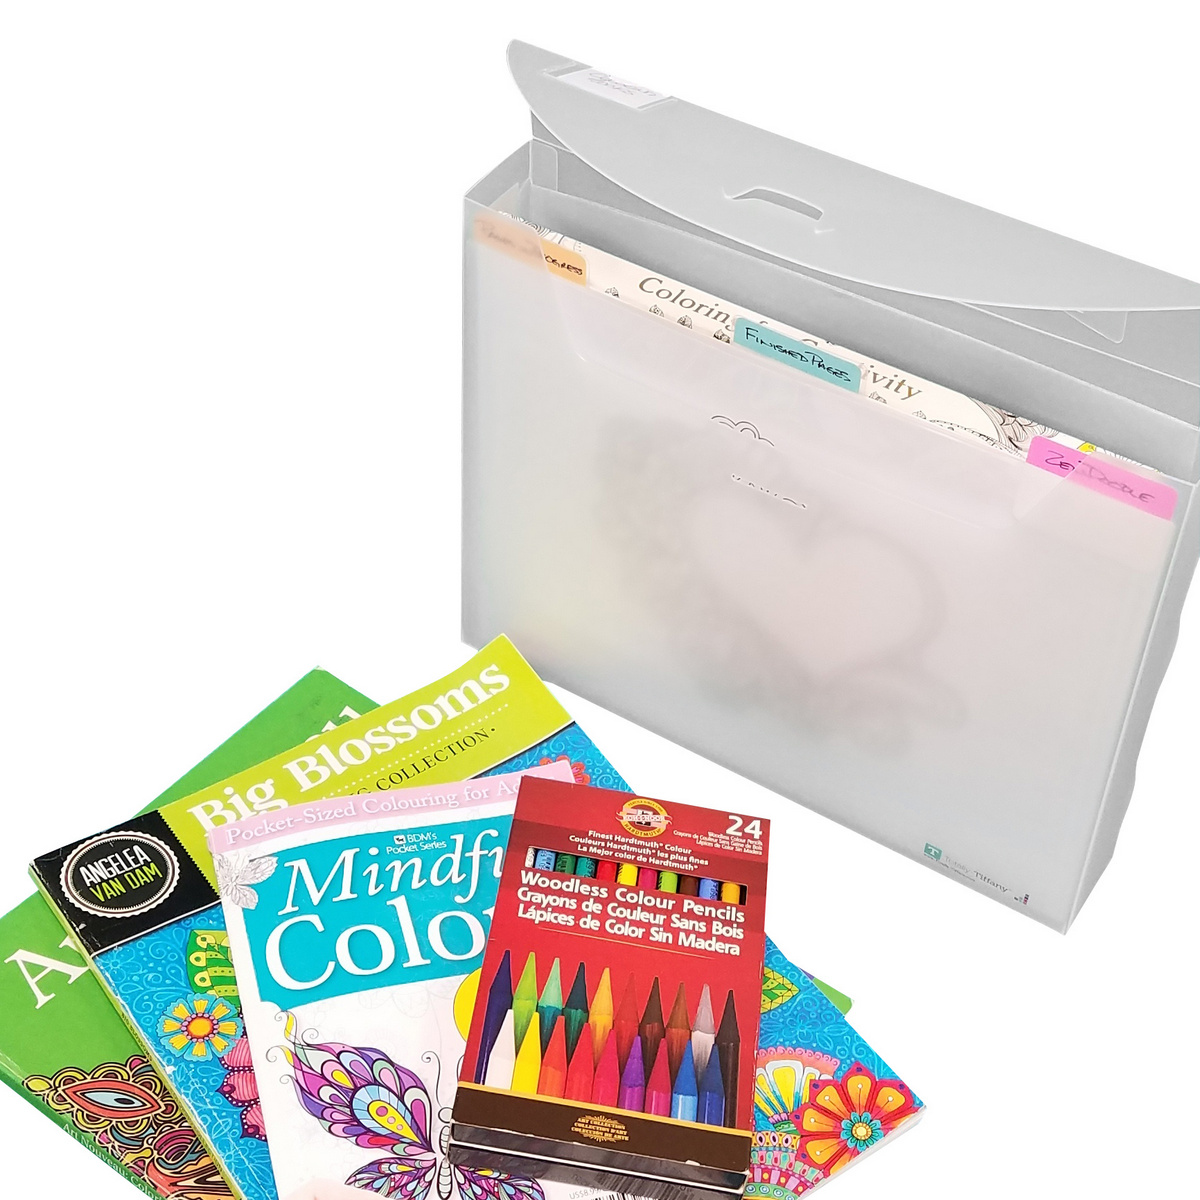 Adult coloring supply storage FFA4